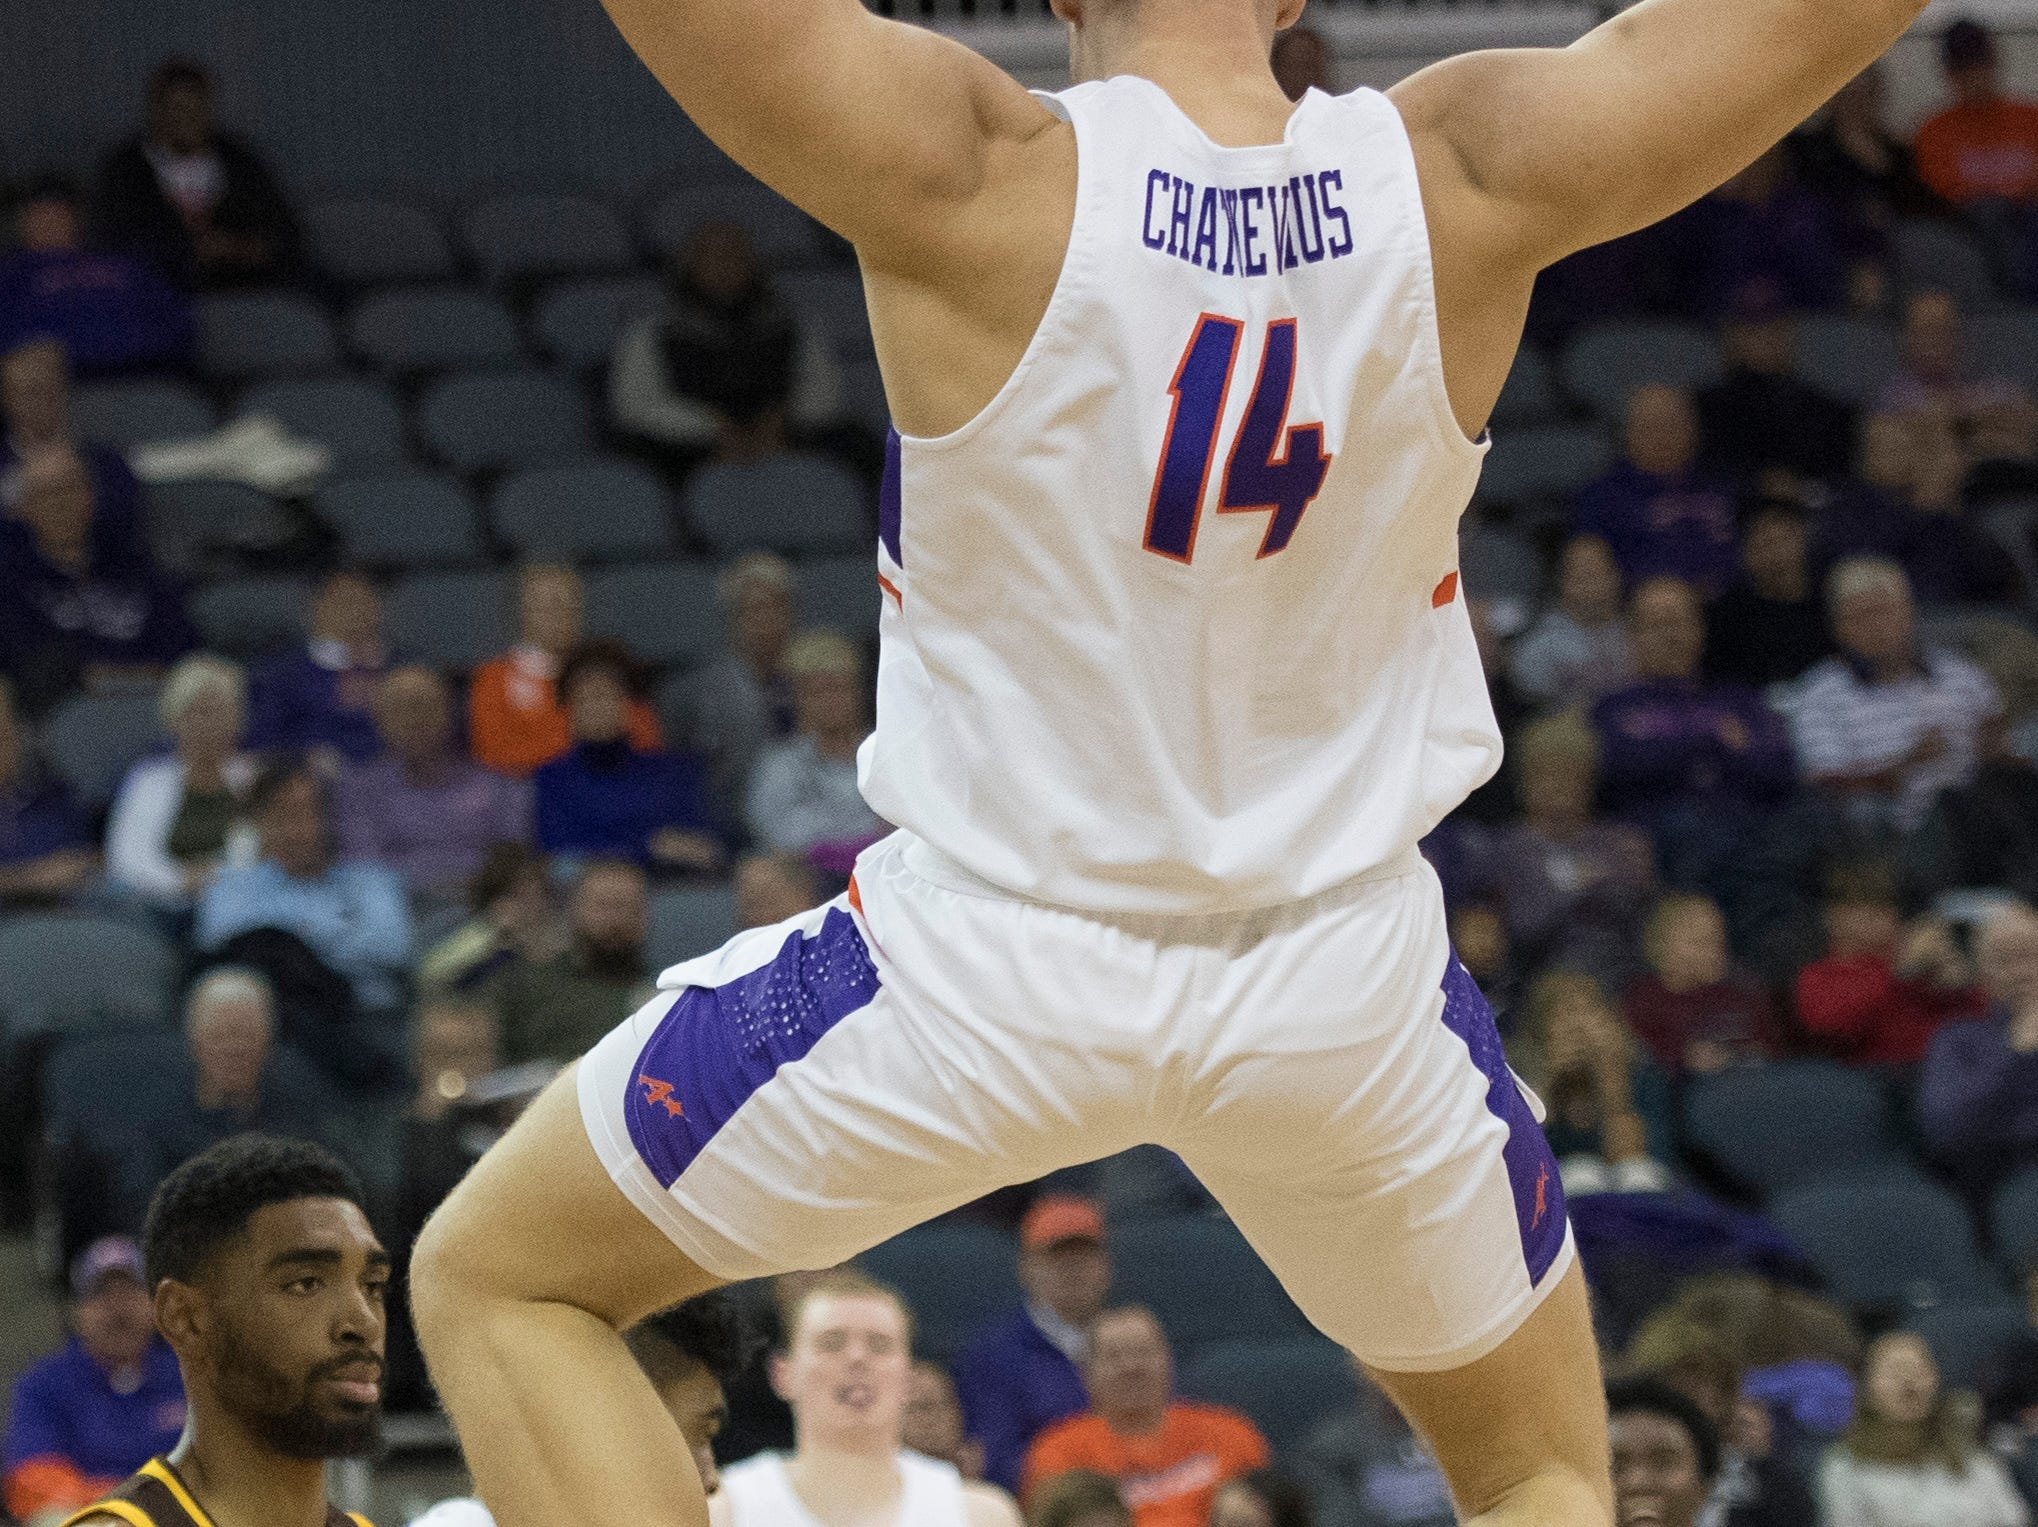 UE's Dainius Charkevicius (14) falls from the rim after a dunk  during the UE vs Wyoming game at the Ford Center Wednesday, Nov. 28, 2018. UE won 86-76.